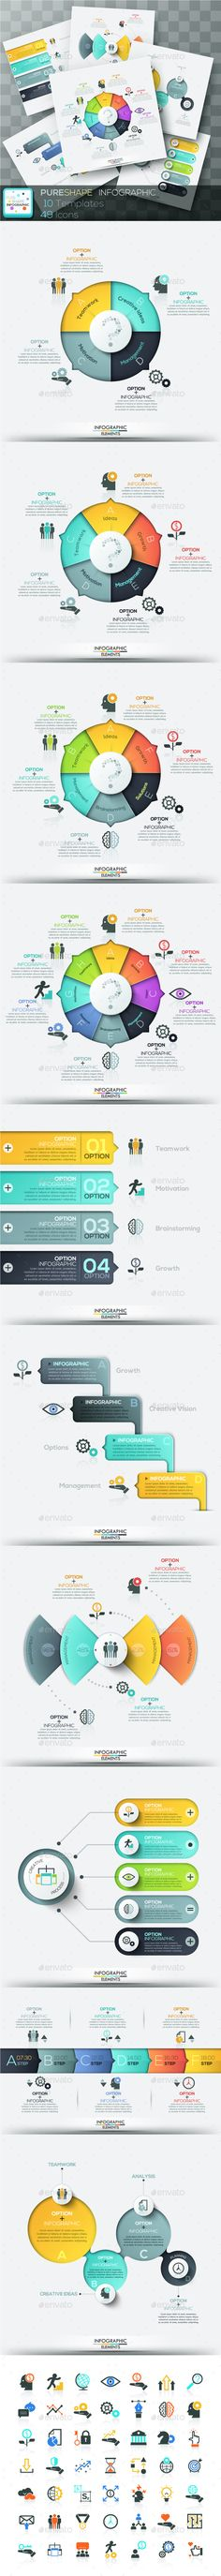 Pure Shape Infographic — Photoshop PSD #layout #template • Available here → https://graphicriver.net/item/pure-shape-infographic/15818237?ref=pxcr